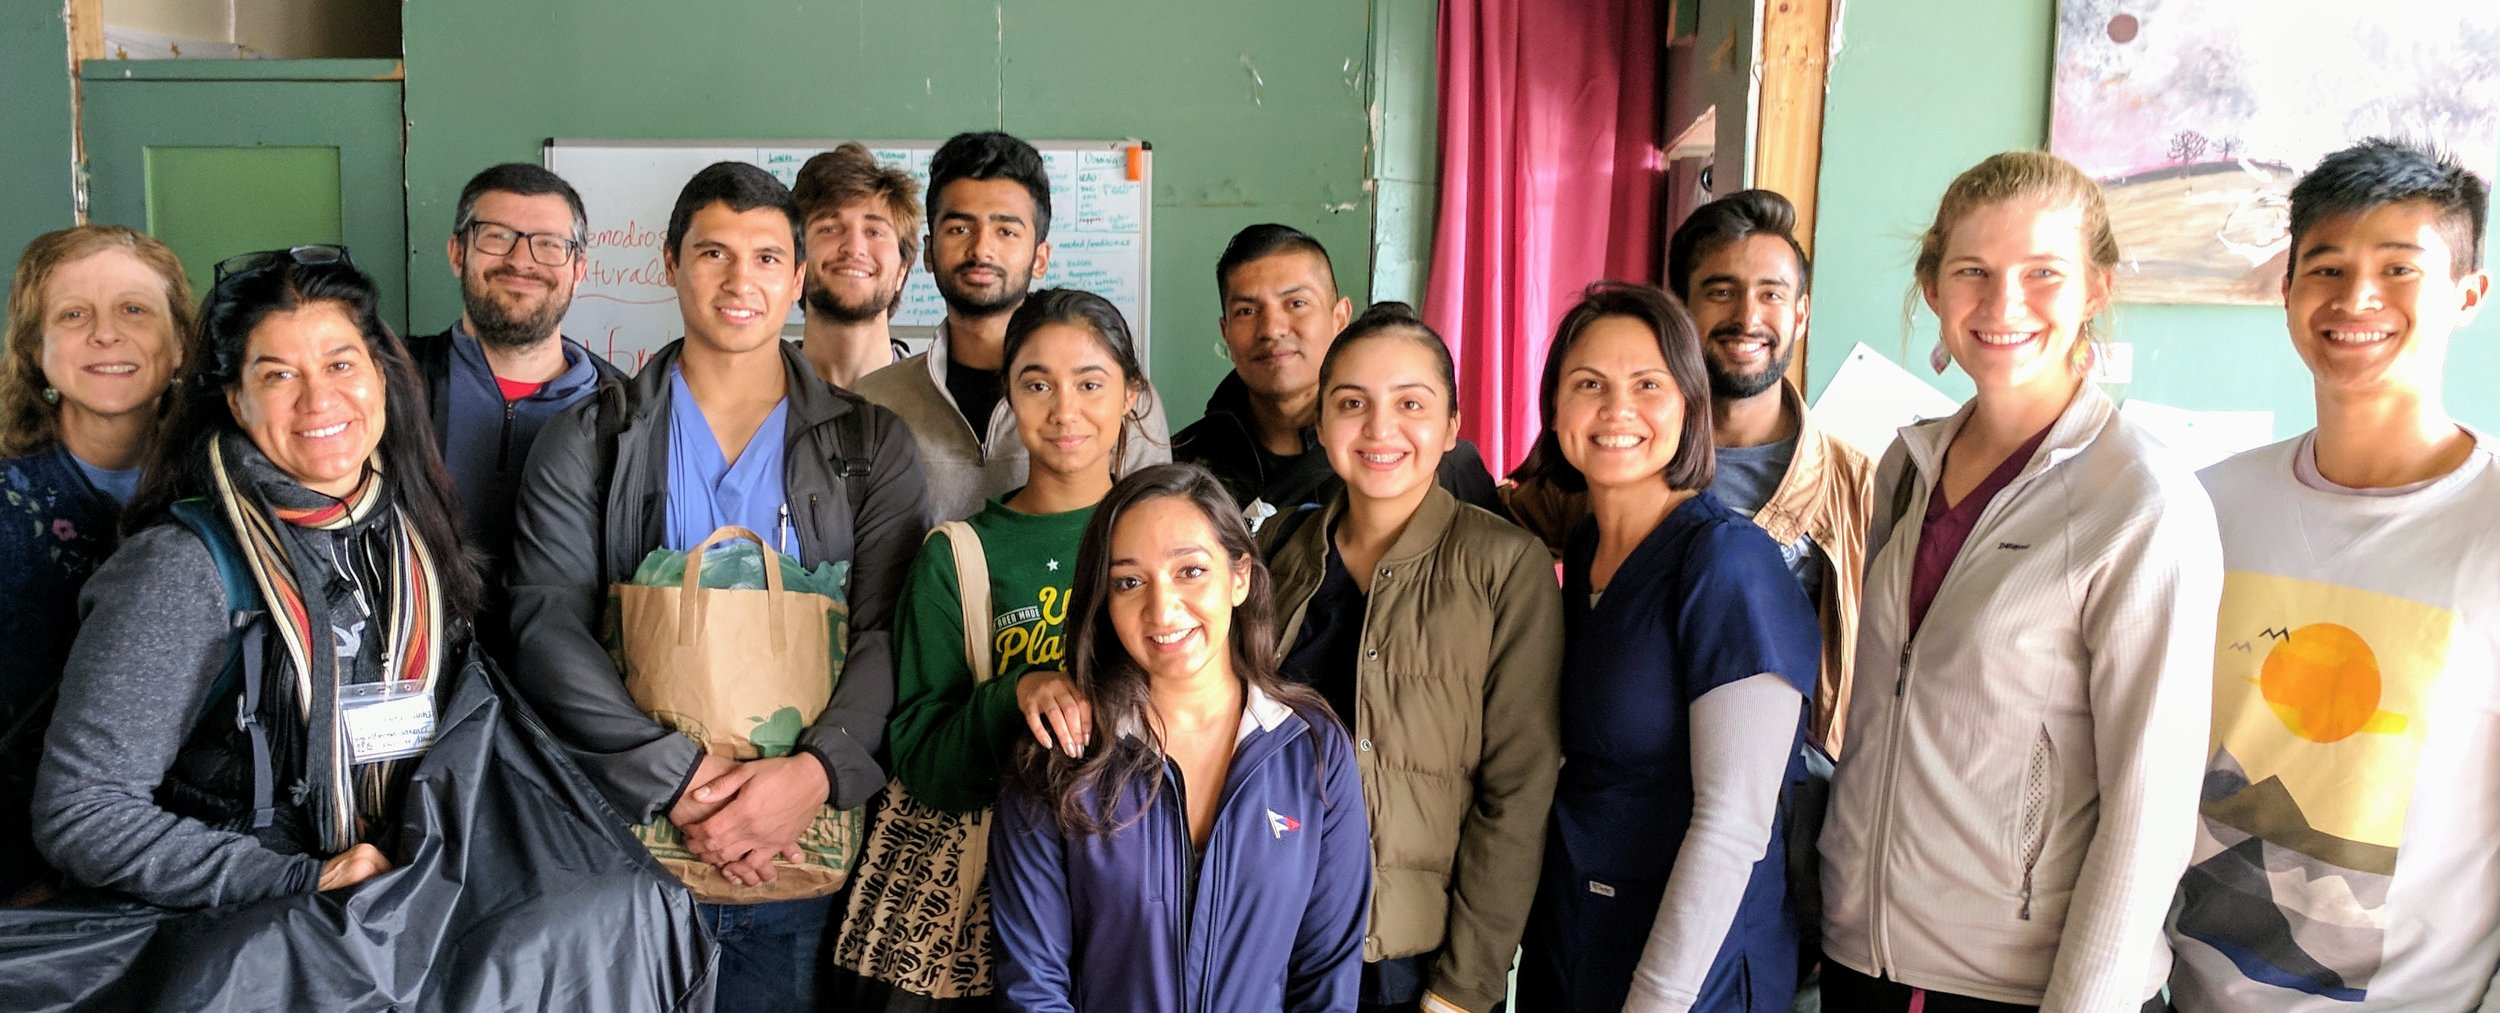 A team of doctors from San Diego and the Bay Area provided medical services for asylum seekers.